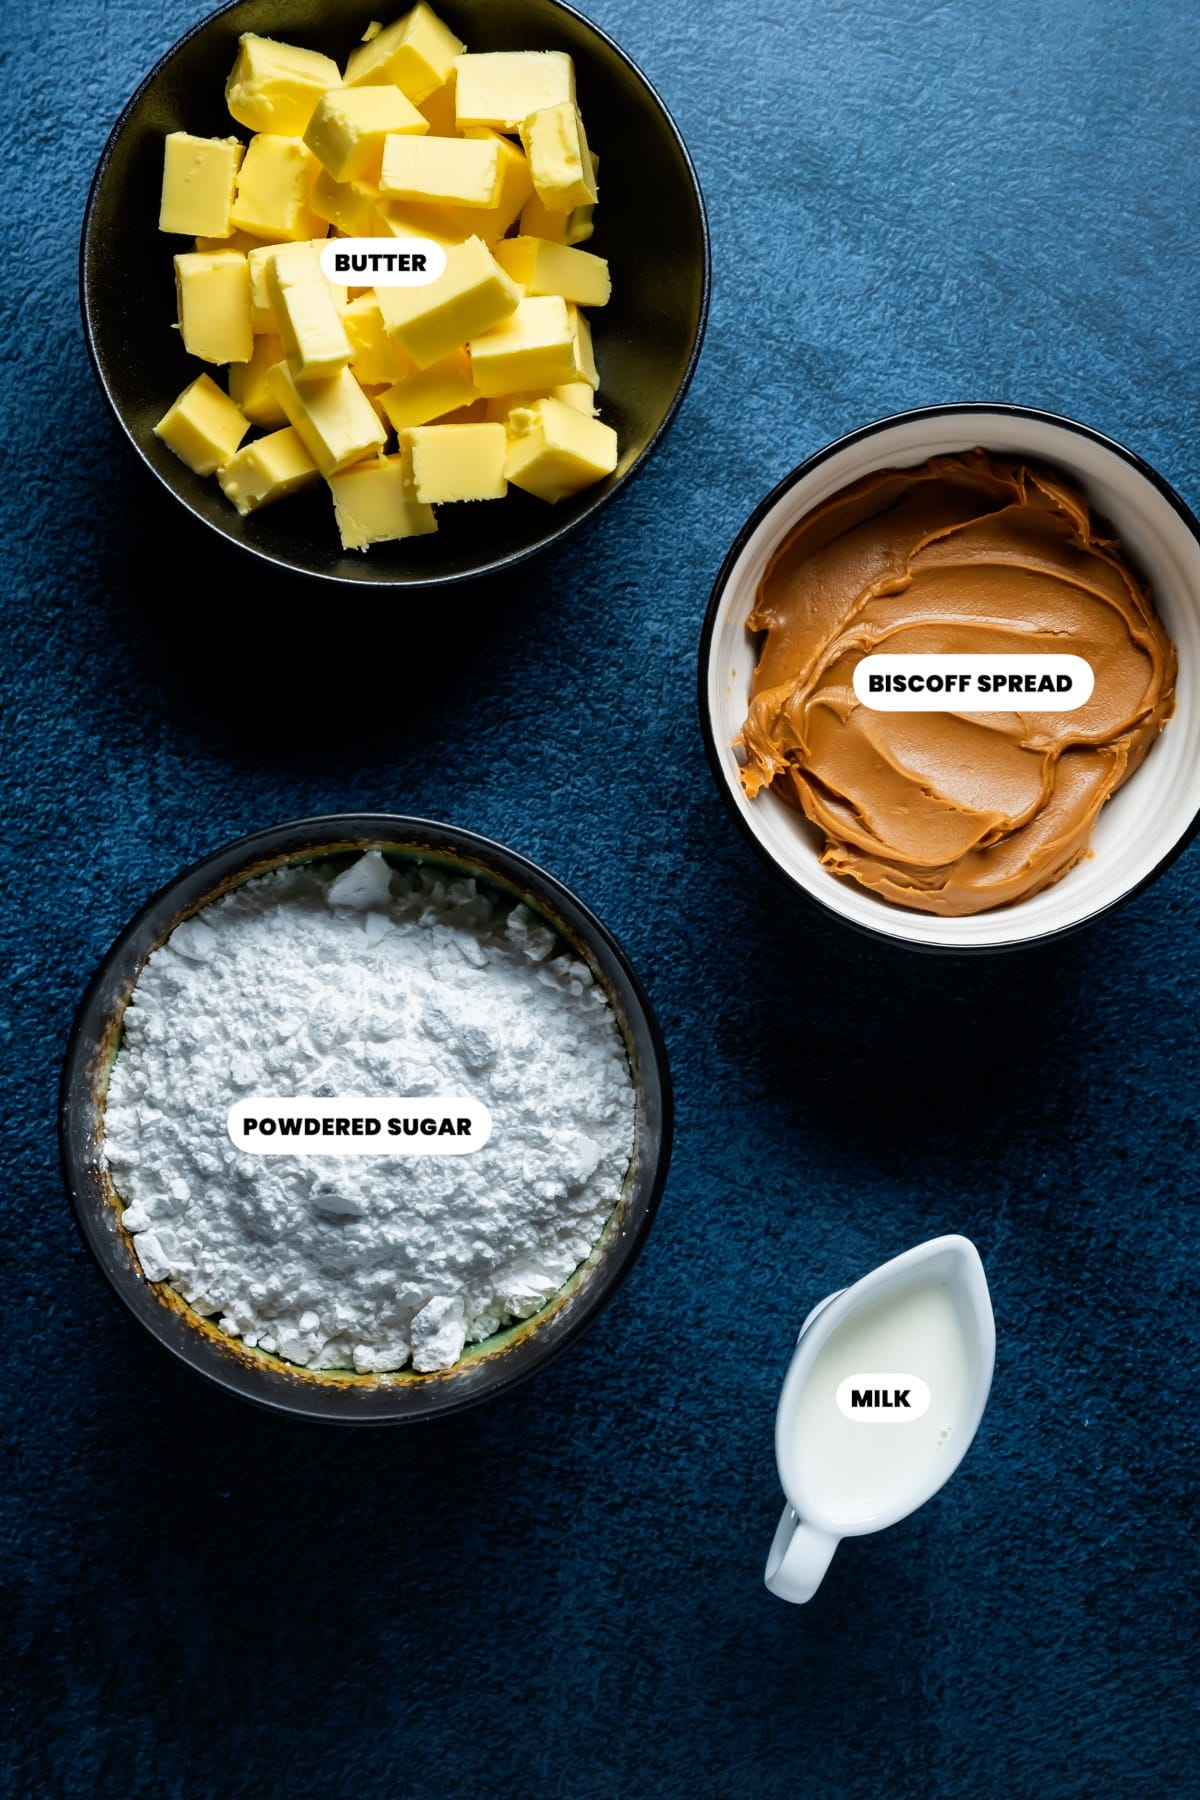 Photo of the ingredients needed to make biscoff buttercream.